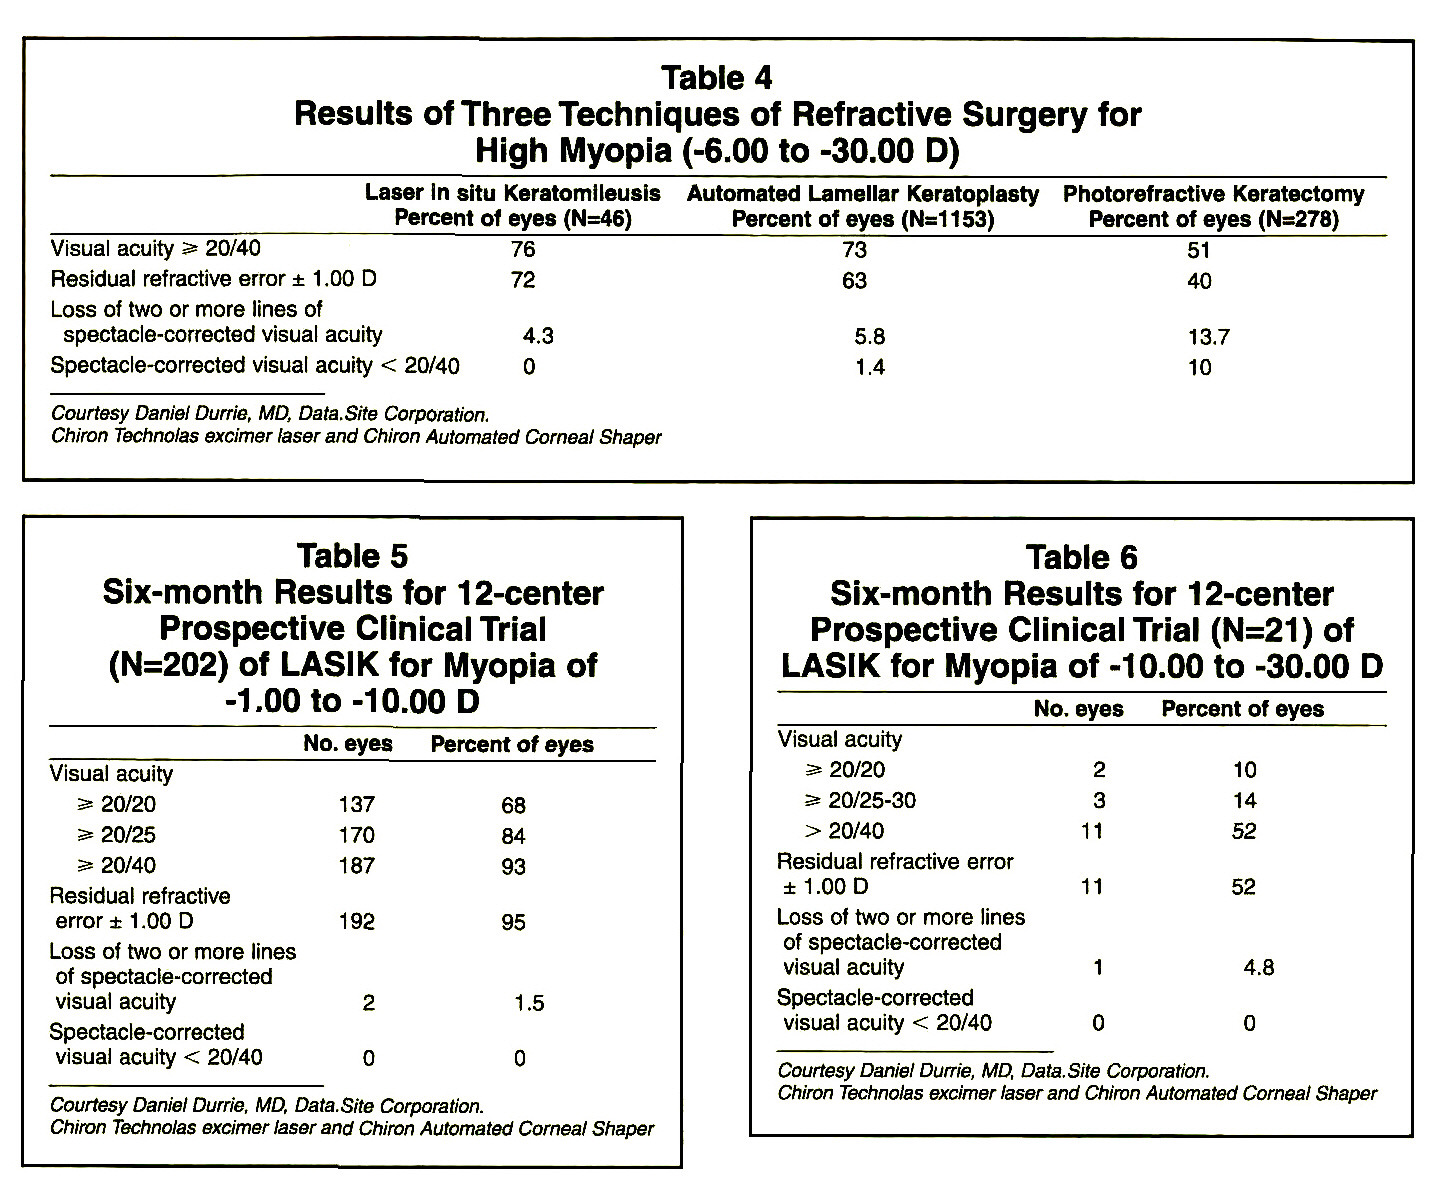 Table 4Results of Three Techniques of Refractive Surgery for High Myopia (-6.00 to -30.00 D)Table 5Six-month Results for 12-center Prospective Clinical Trial (N=202) of LASIK for Myopia of -1.00 to -10.00 DTable 6Six-month Results for 12-center Prospective Clinical Trial (N=21) of LASiK for Myopia of -10.00 to -30.00 D